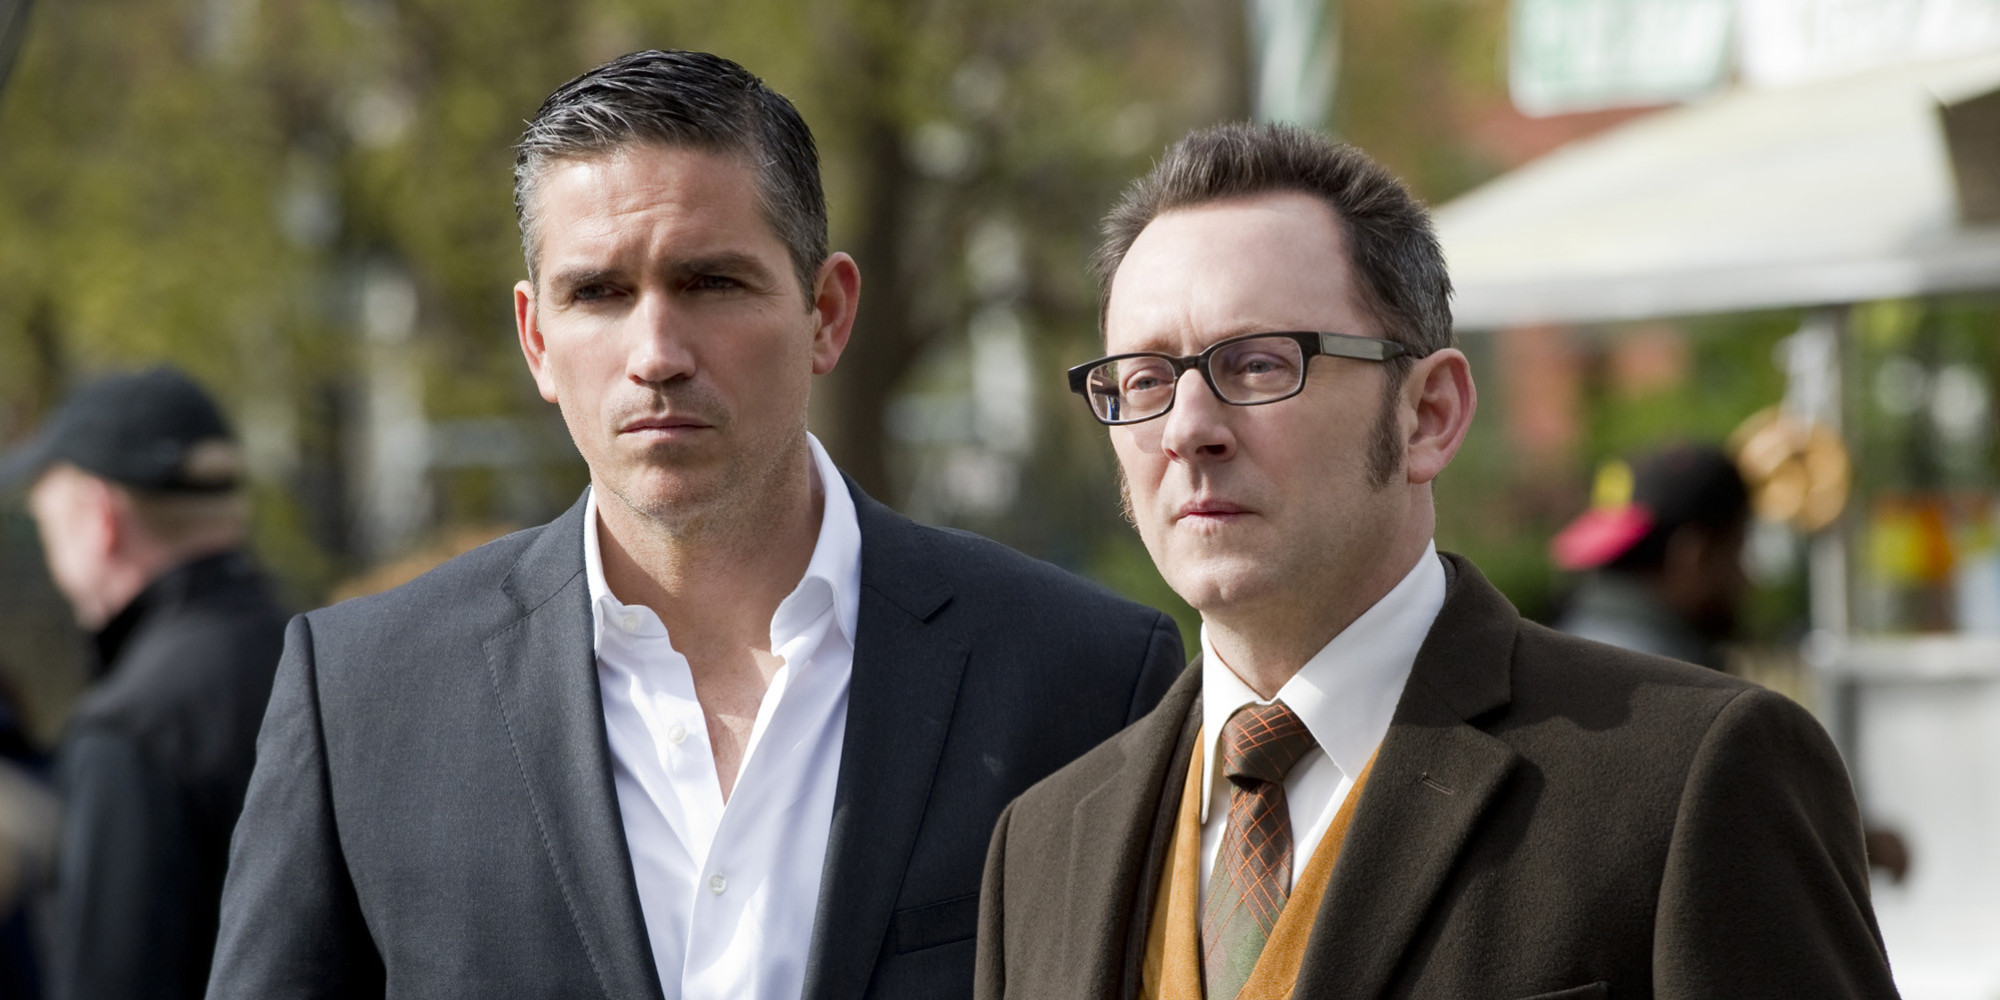 "NEW YORK - APRIL 27: ""No Good Deed"" -- The newest POI's curiosity could spell his doom when he finds himself embroiled in a dark government conspiracy - one that Finch (Michael Emerson, right) is all too familiar with, on PERSON OF INTEREST, Thursday, May 10 (9:00 - 10:00 PM, ET/PT) on the CBS Television Network. Meanwhile, Reese (Jim Caviezel, left) uncovers something revealing about Finch's past. (Photo by John Paul Filo/CBS via Getty Images)"